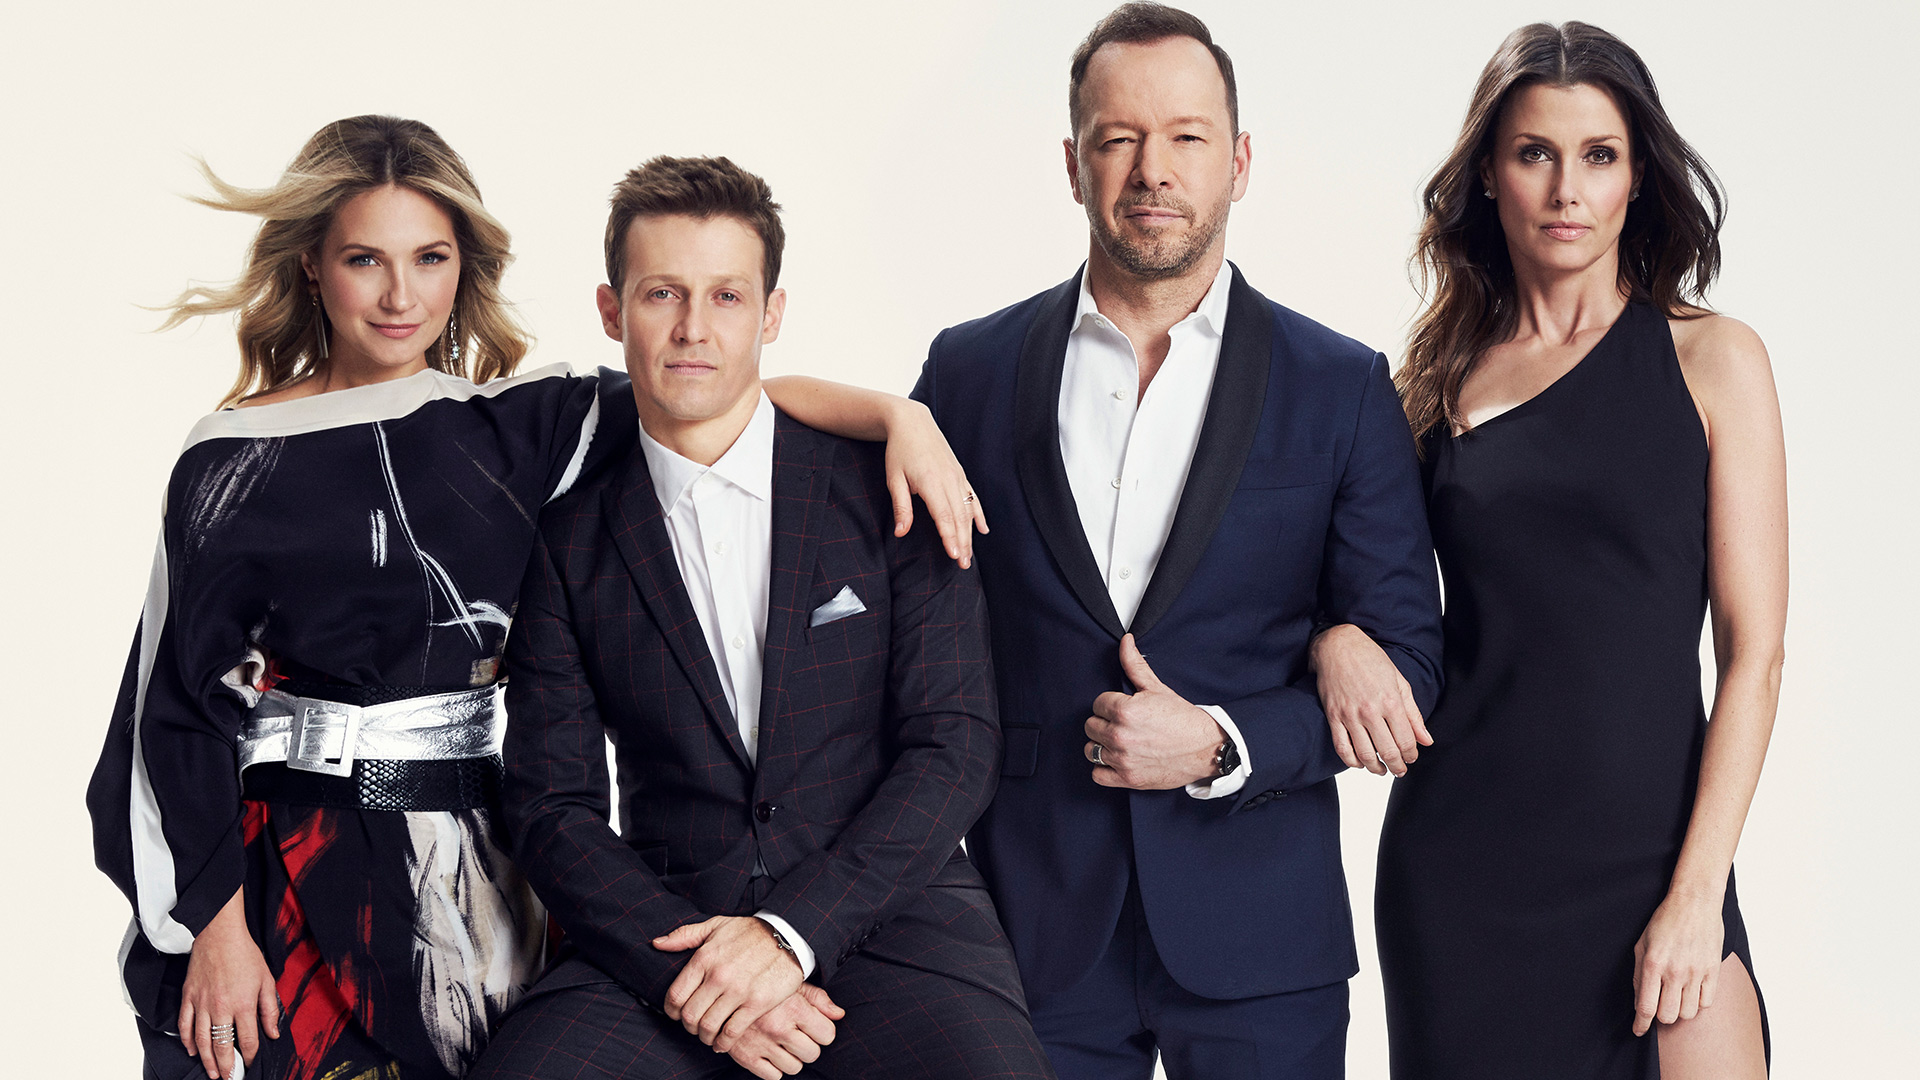 The cast of Blue Bloods, especially when they slay this fashion photo shoot